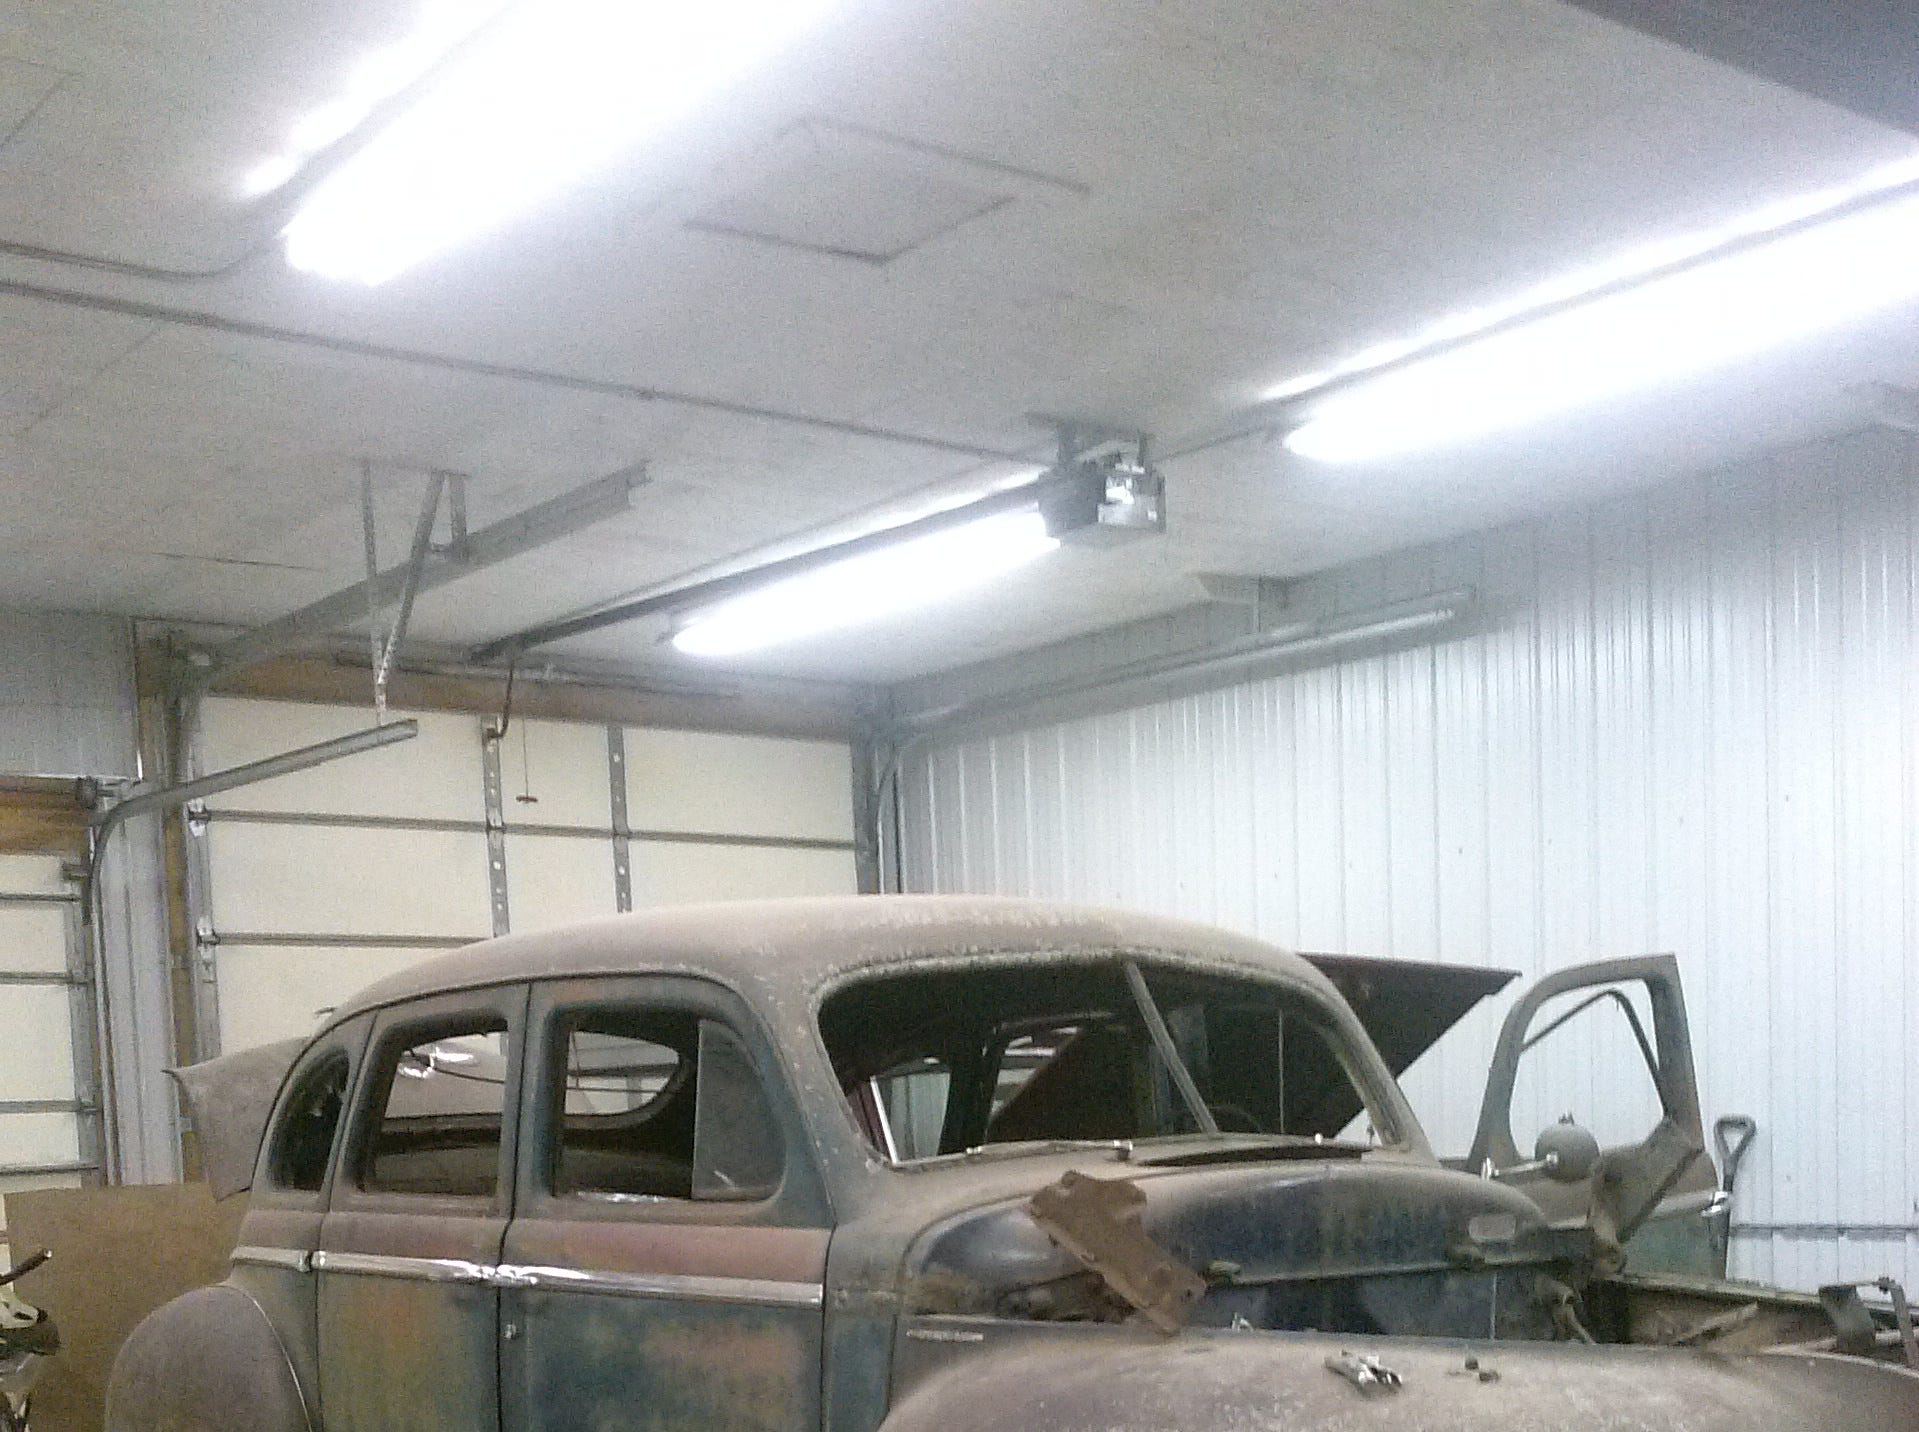 The '48 Plymouth needed a lot of work, but Lindwall is a metal fabricator and has restored vehicles in the past. He found refuge by working the old sedan.